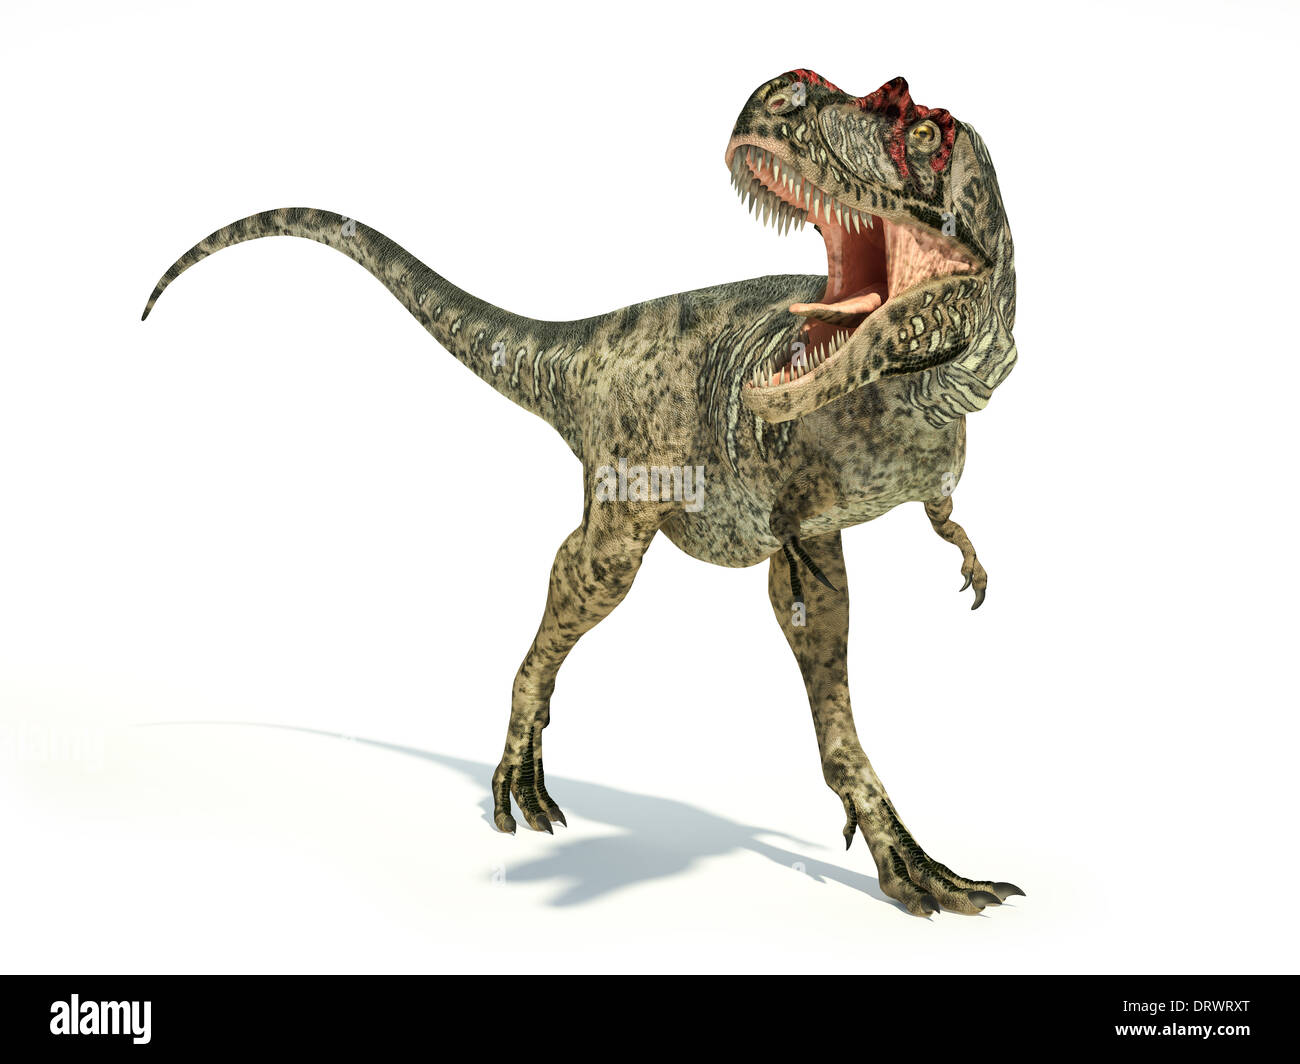 Albertosaurus Dinosaur, photo-realistic and scientifically correct representation, dynamic posture. On white background. - Stock Image